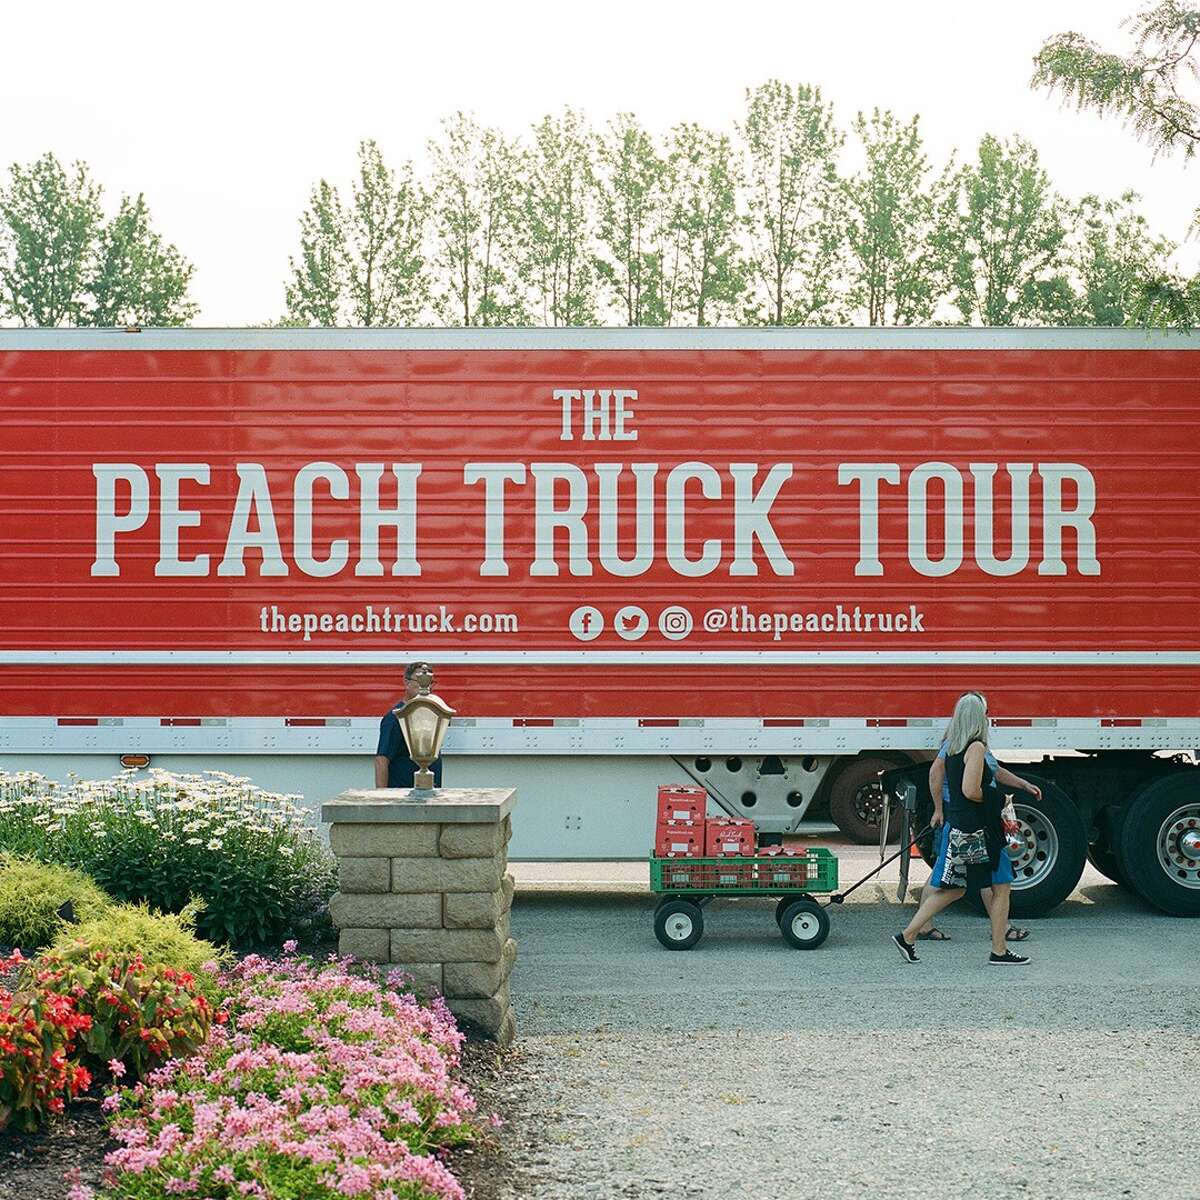 The Peach Truck Tour is coming to San Antonio this summer.